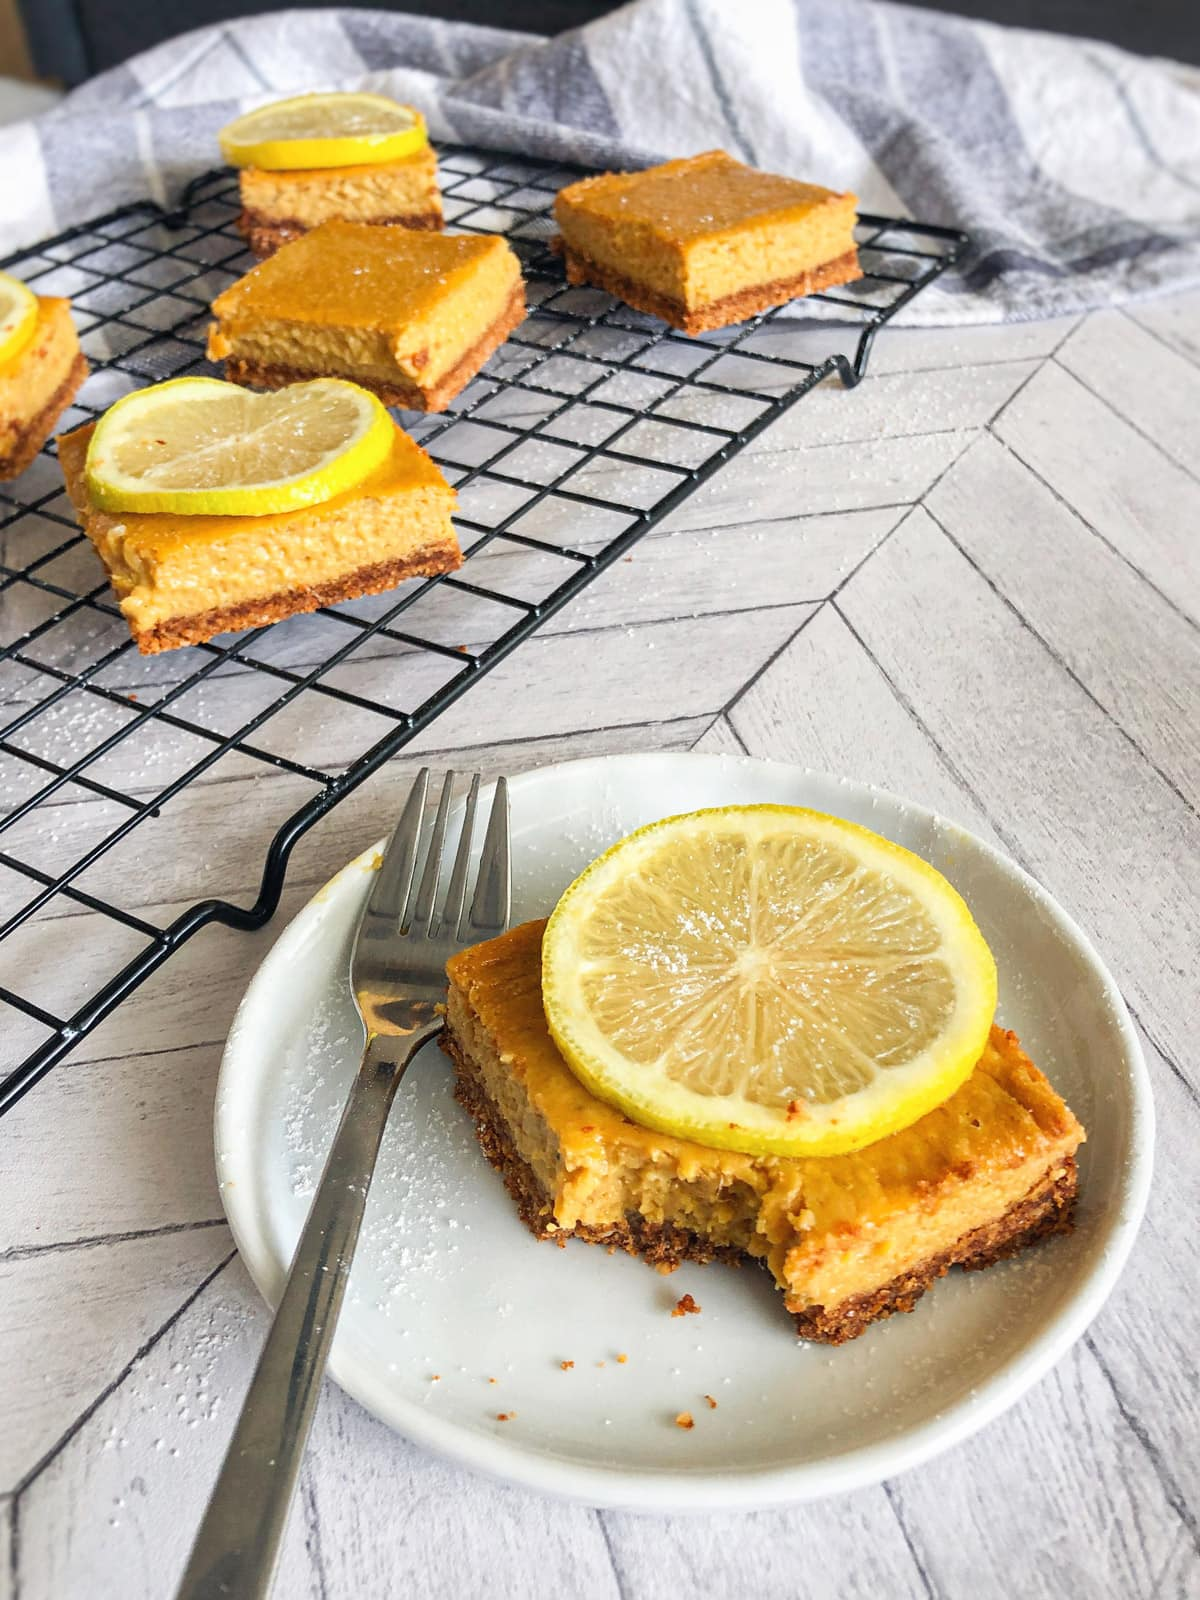 mango lemon shortbread bar in small white plate with lemon slice on top and bars on cooling rack in background